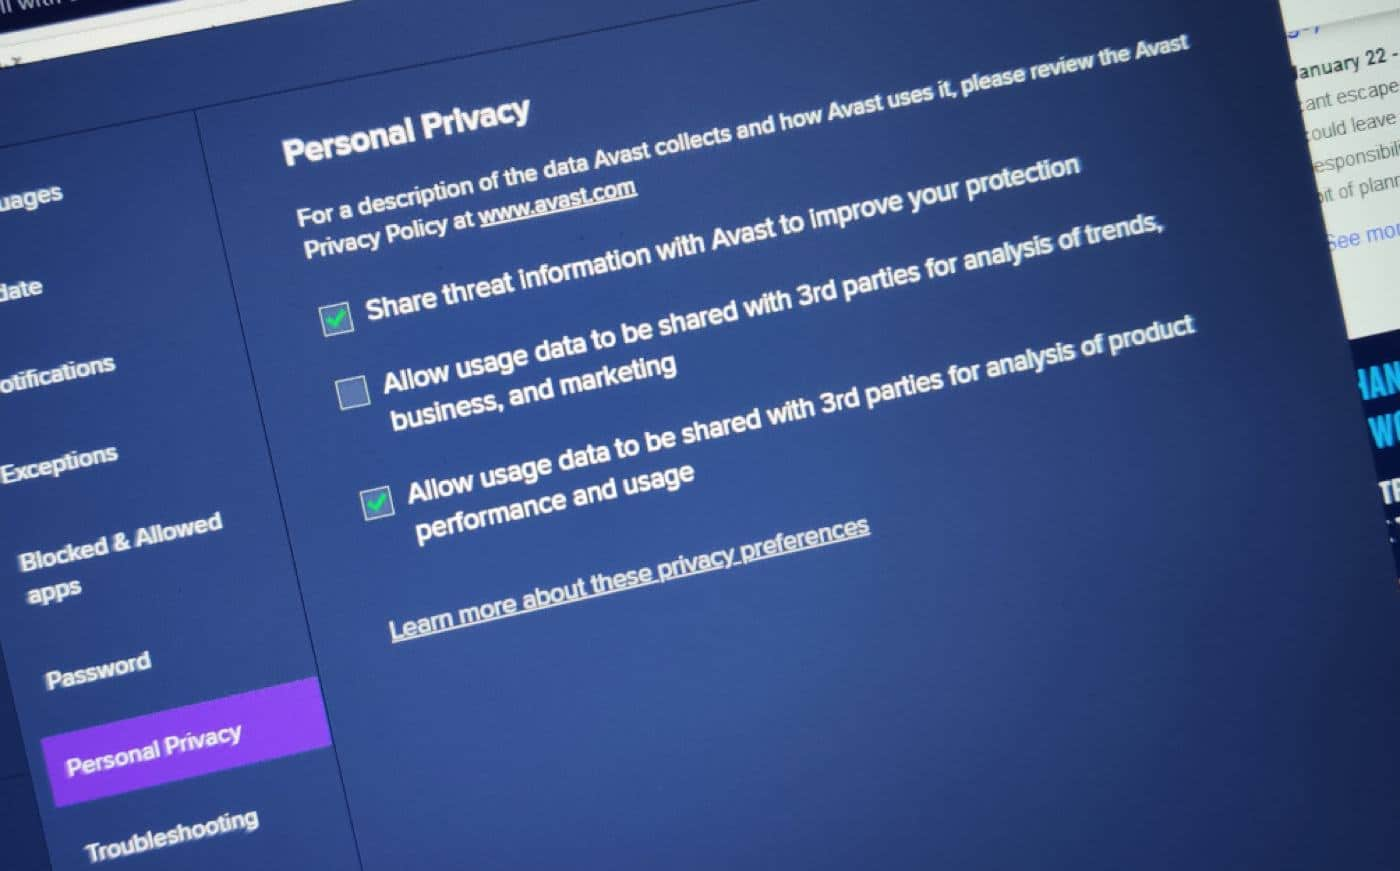 avast is selling your data